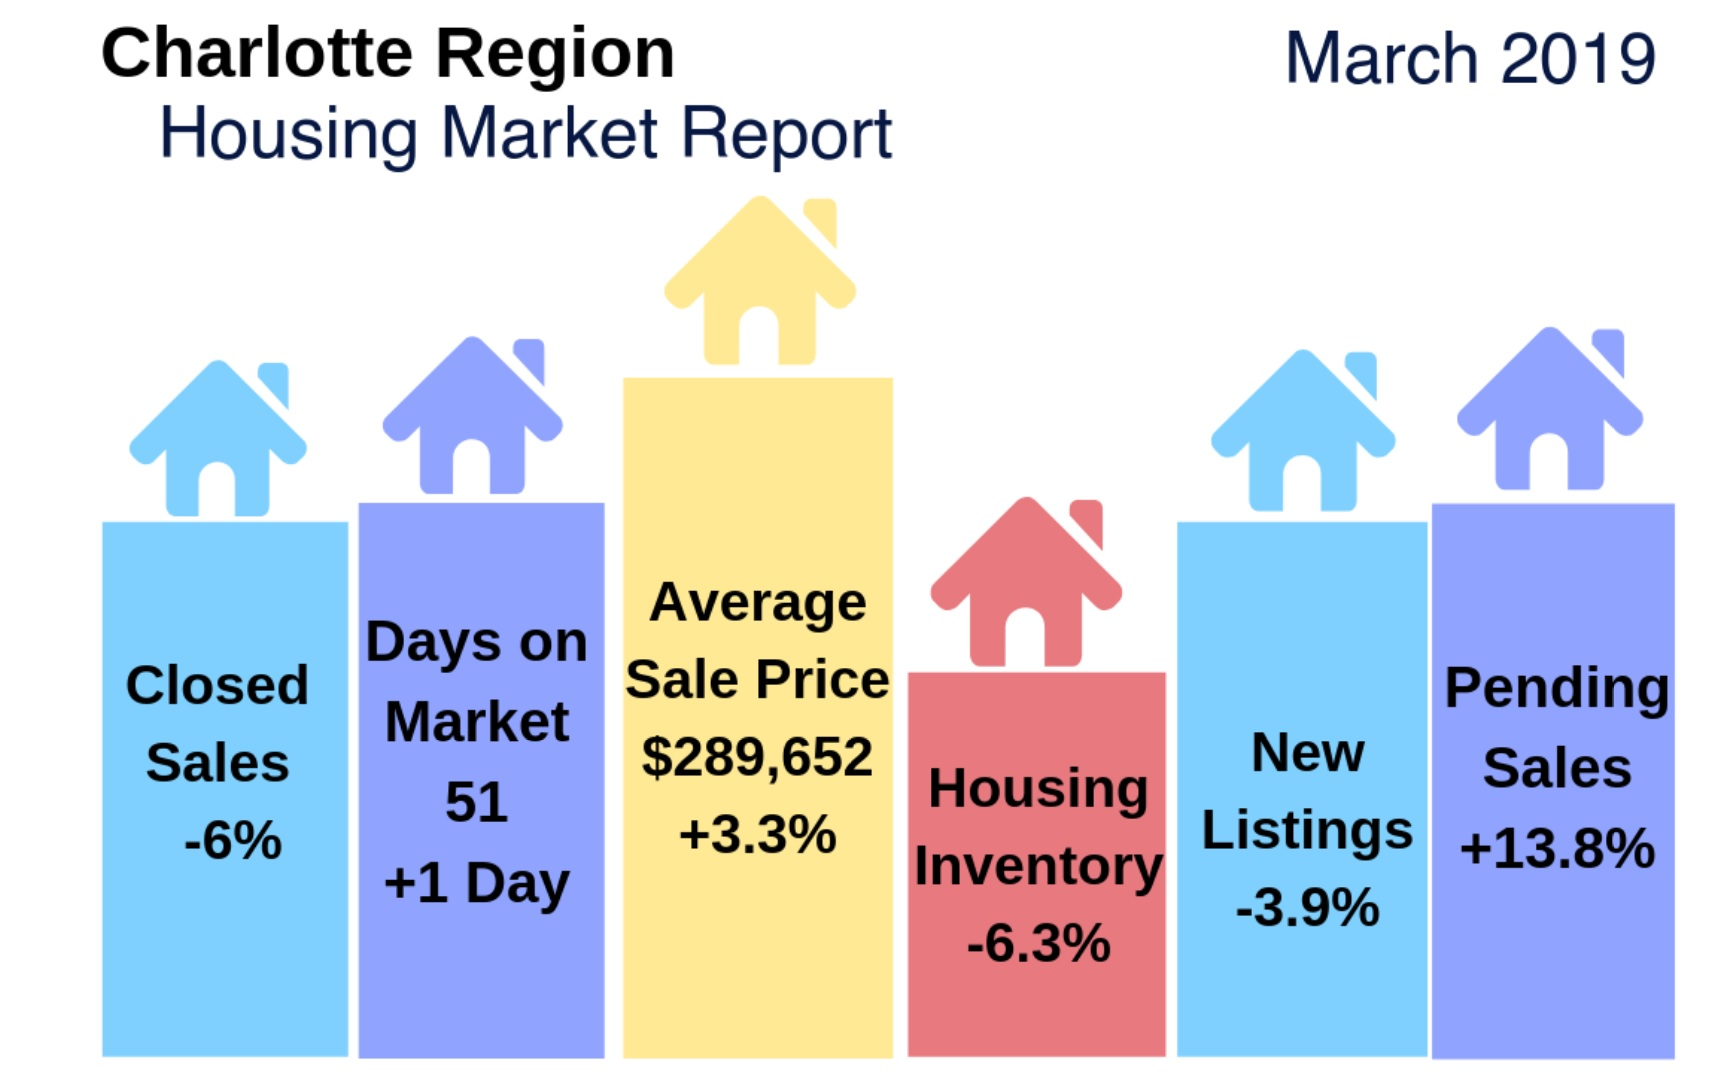 Charlotte Region Housing Update & Video: March 2019